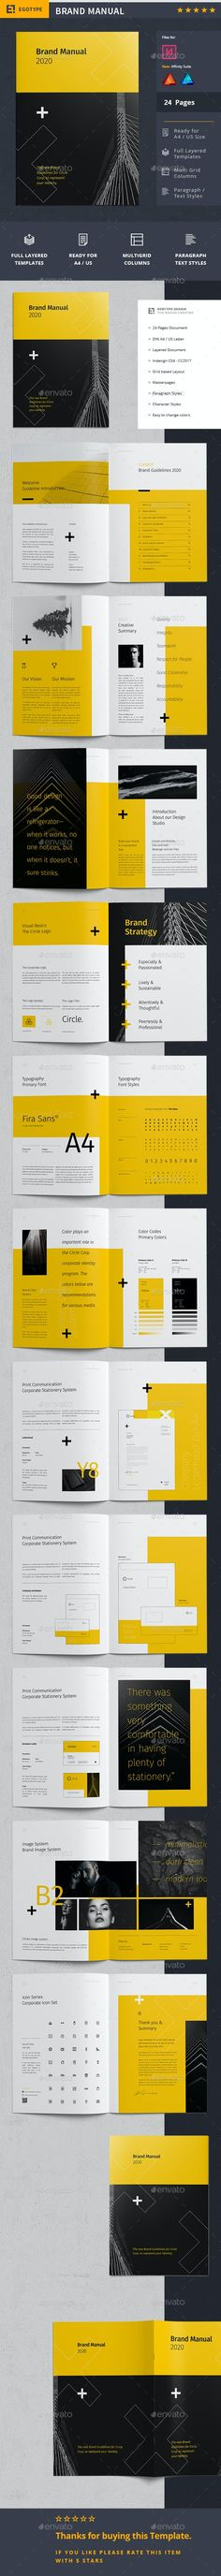 Minimal and Professional Brand Manual and Identity Brochure template for creative businesses, created in Adobe InDesign, Affinity Publisher and Affinity Designer. Formats are prepared in International DIN A4 and US Letter format. This Brand Manual Template features: A4 size : 297×210 mm + 3 mm Bleeding US Letter size : 8.5×11 inch + 3 mm Bleeding CMYK @ 300 DPI – Print-ready Adobe InDesign for CS4, CS5, CS6 #brochure #Brochure #template #Brochures #Layout #Sample #Modern #Creative #Ideas… Corporate Fonts, Corporate Brochure, Corporate Design, Free Brochure, Brochure Design, Brochure Template, Brand Guidelines Template, Design Guidelines, Brand Manual